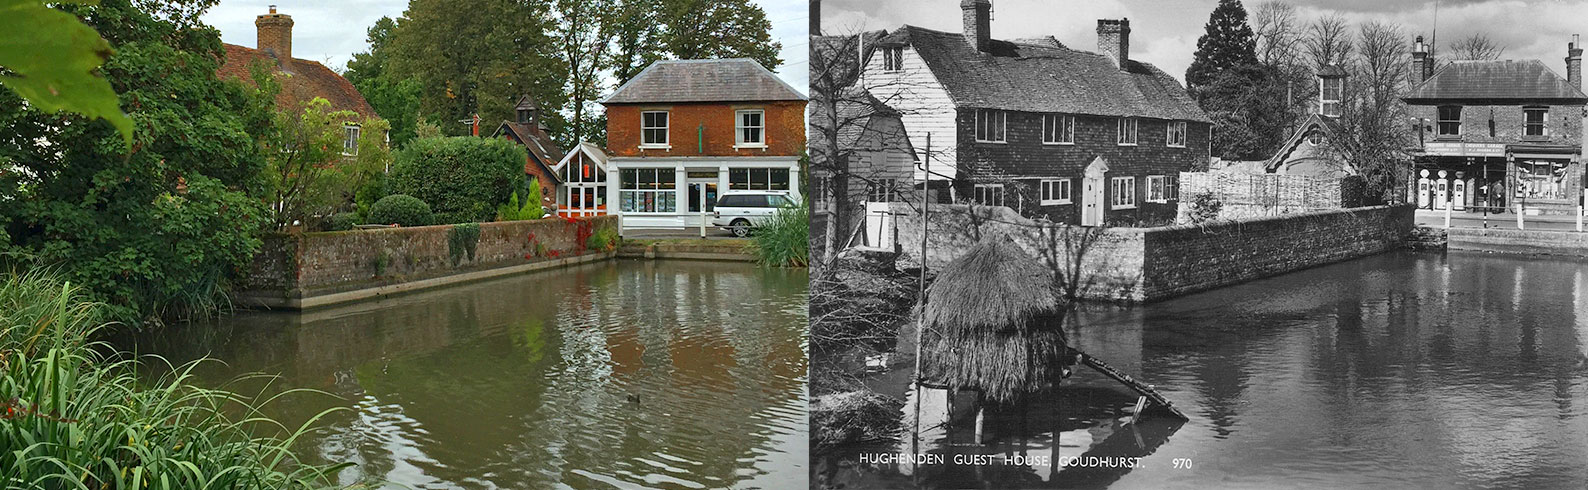 Goudhurst Pond, The Plain, Goudhurst, 50 years ago